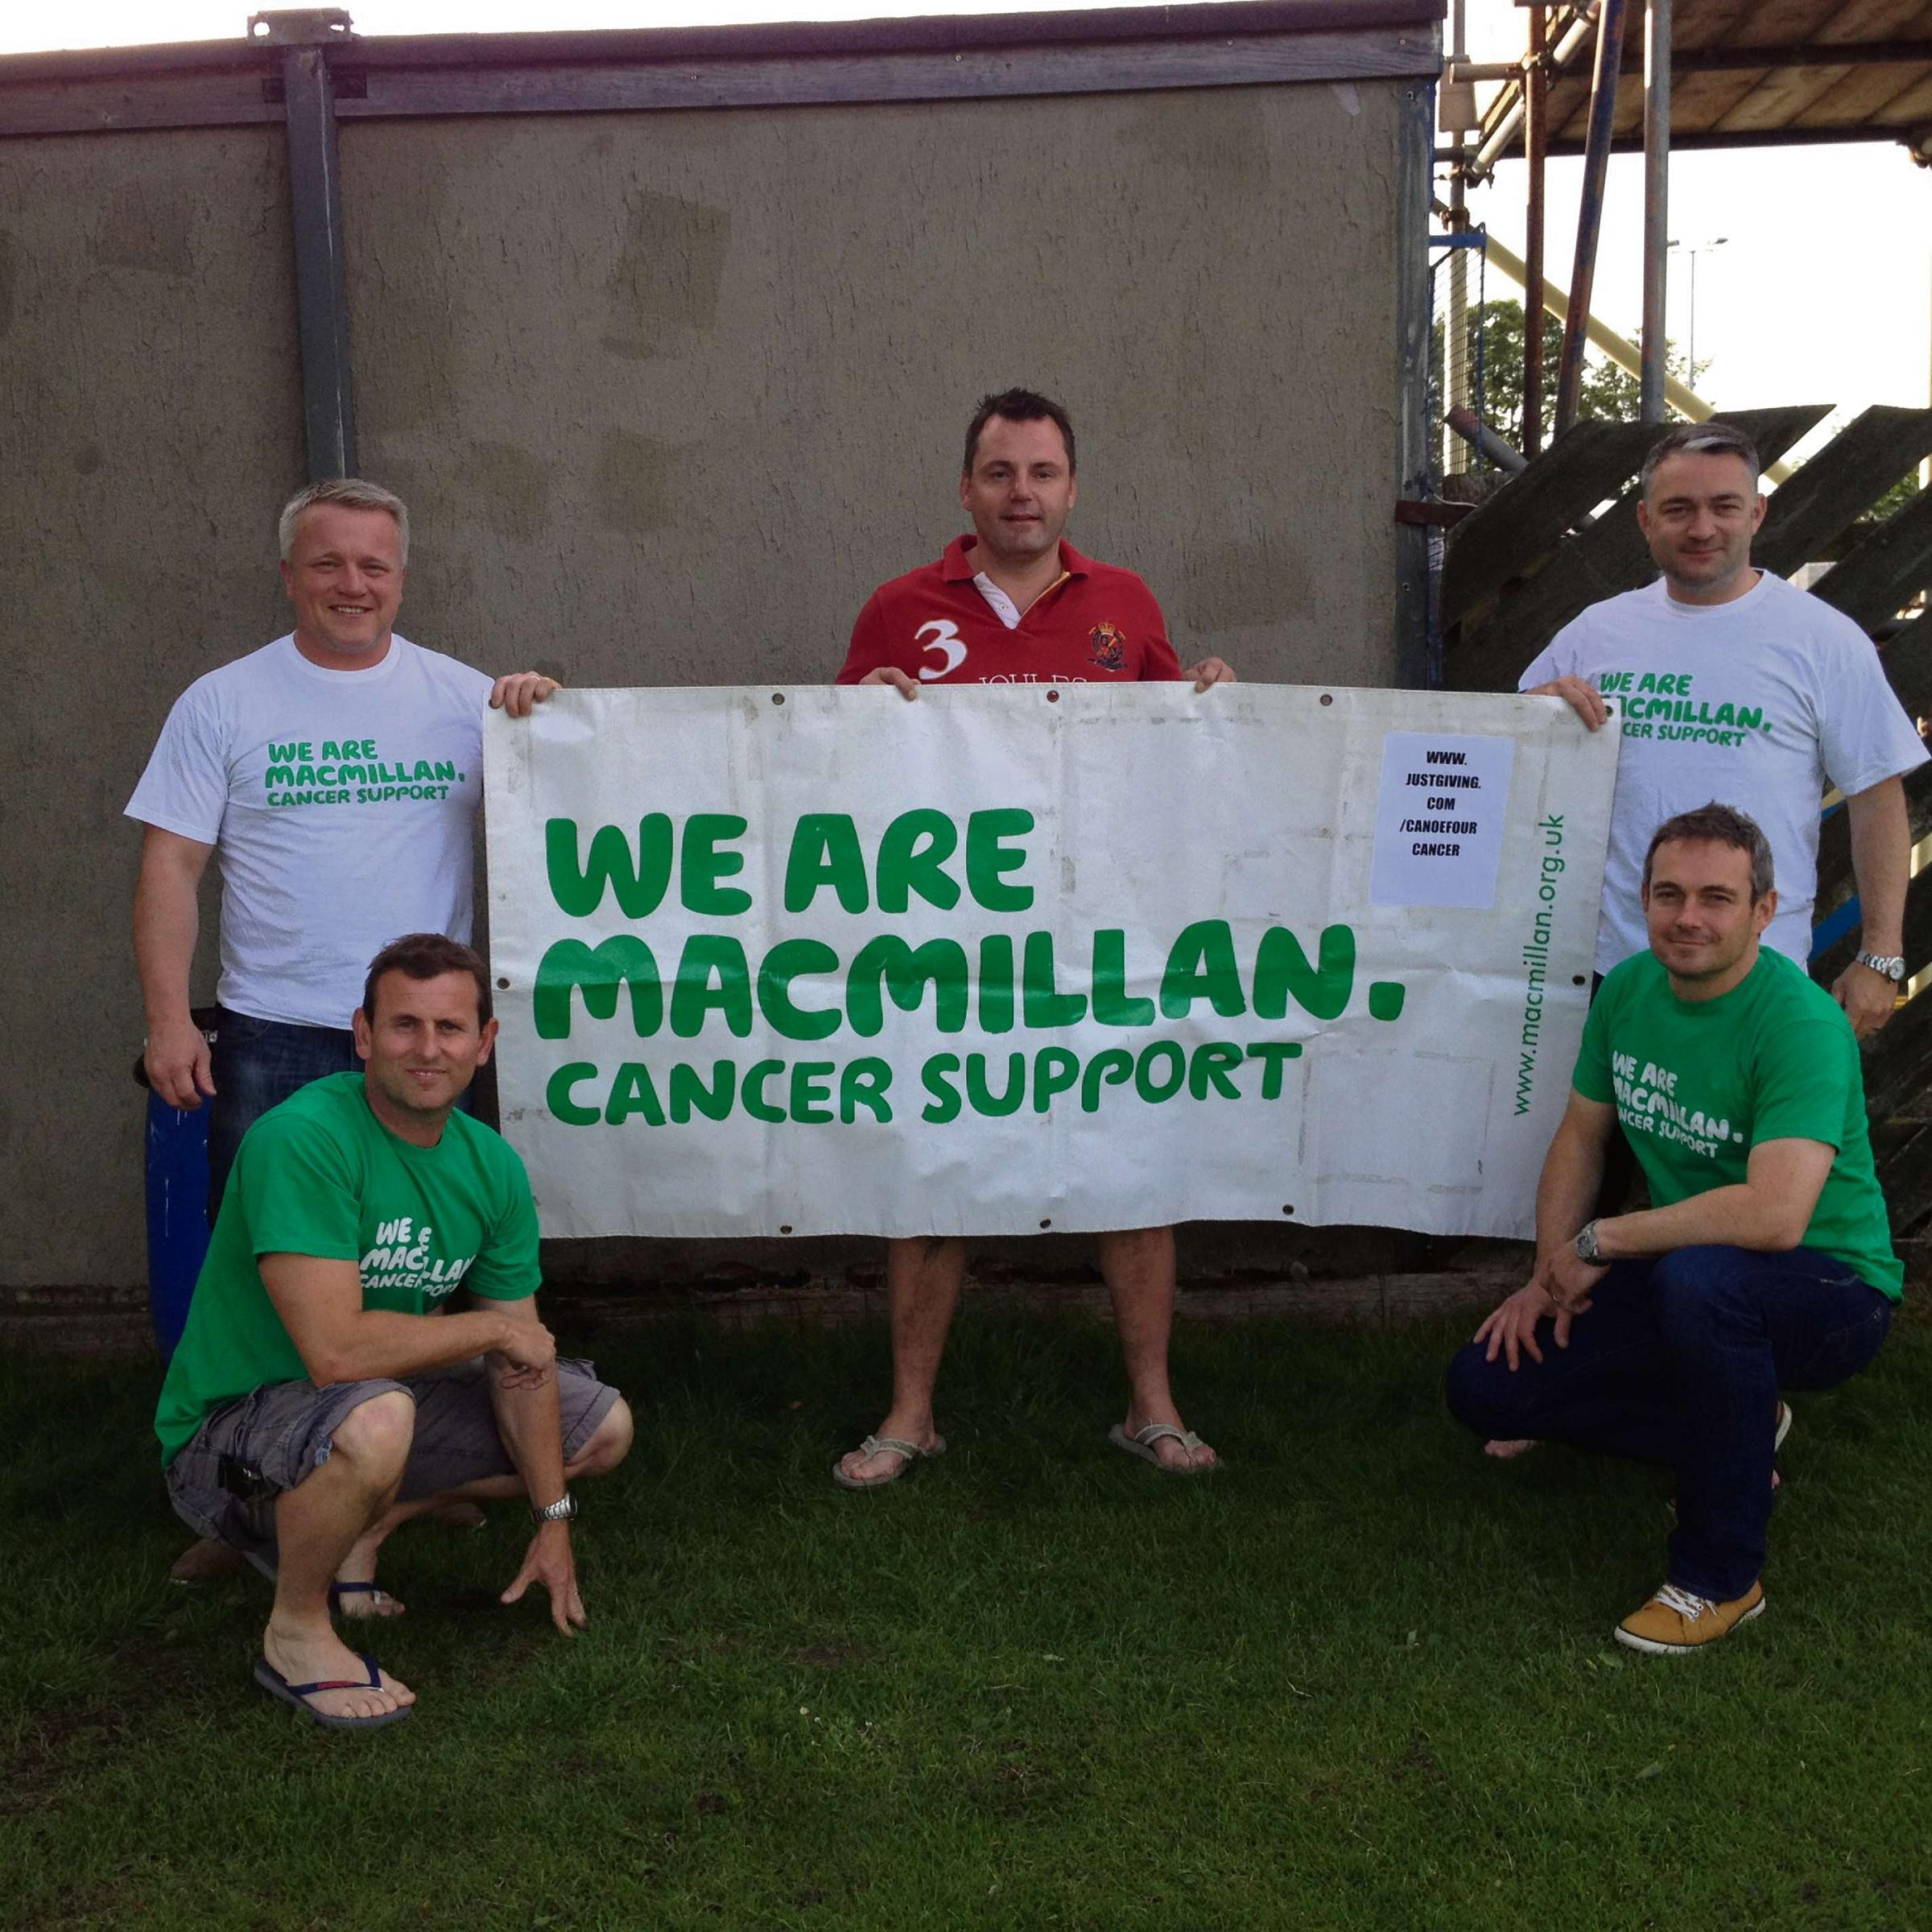 (7024980) Some of the Canoe for Cancer team. From left to right, top row Martyn booth, Craig